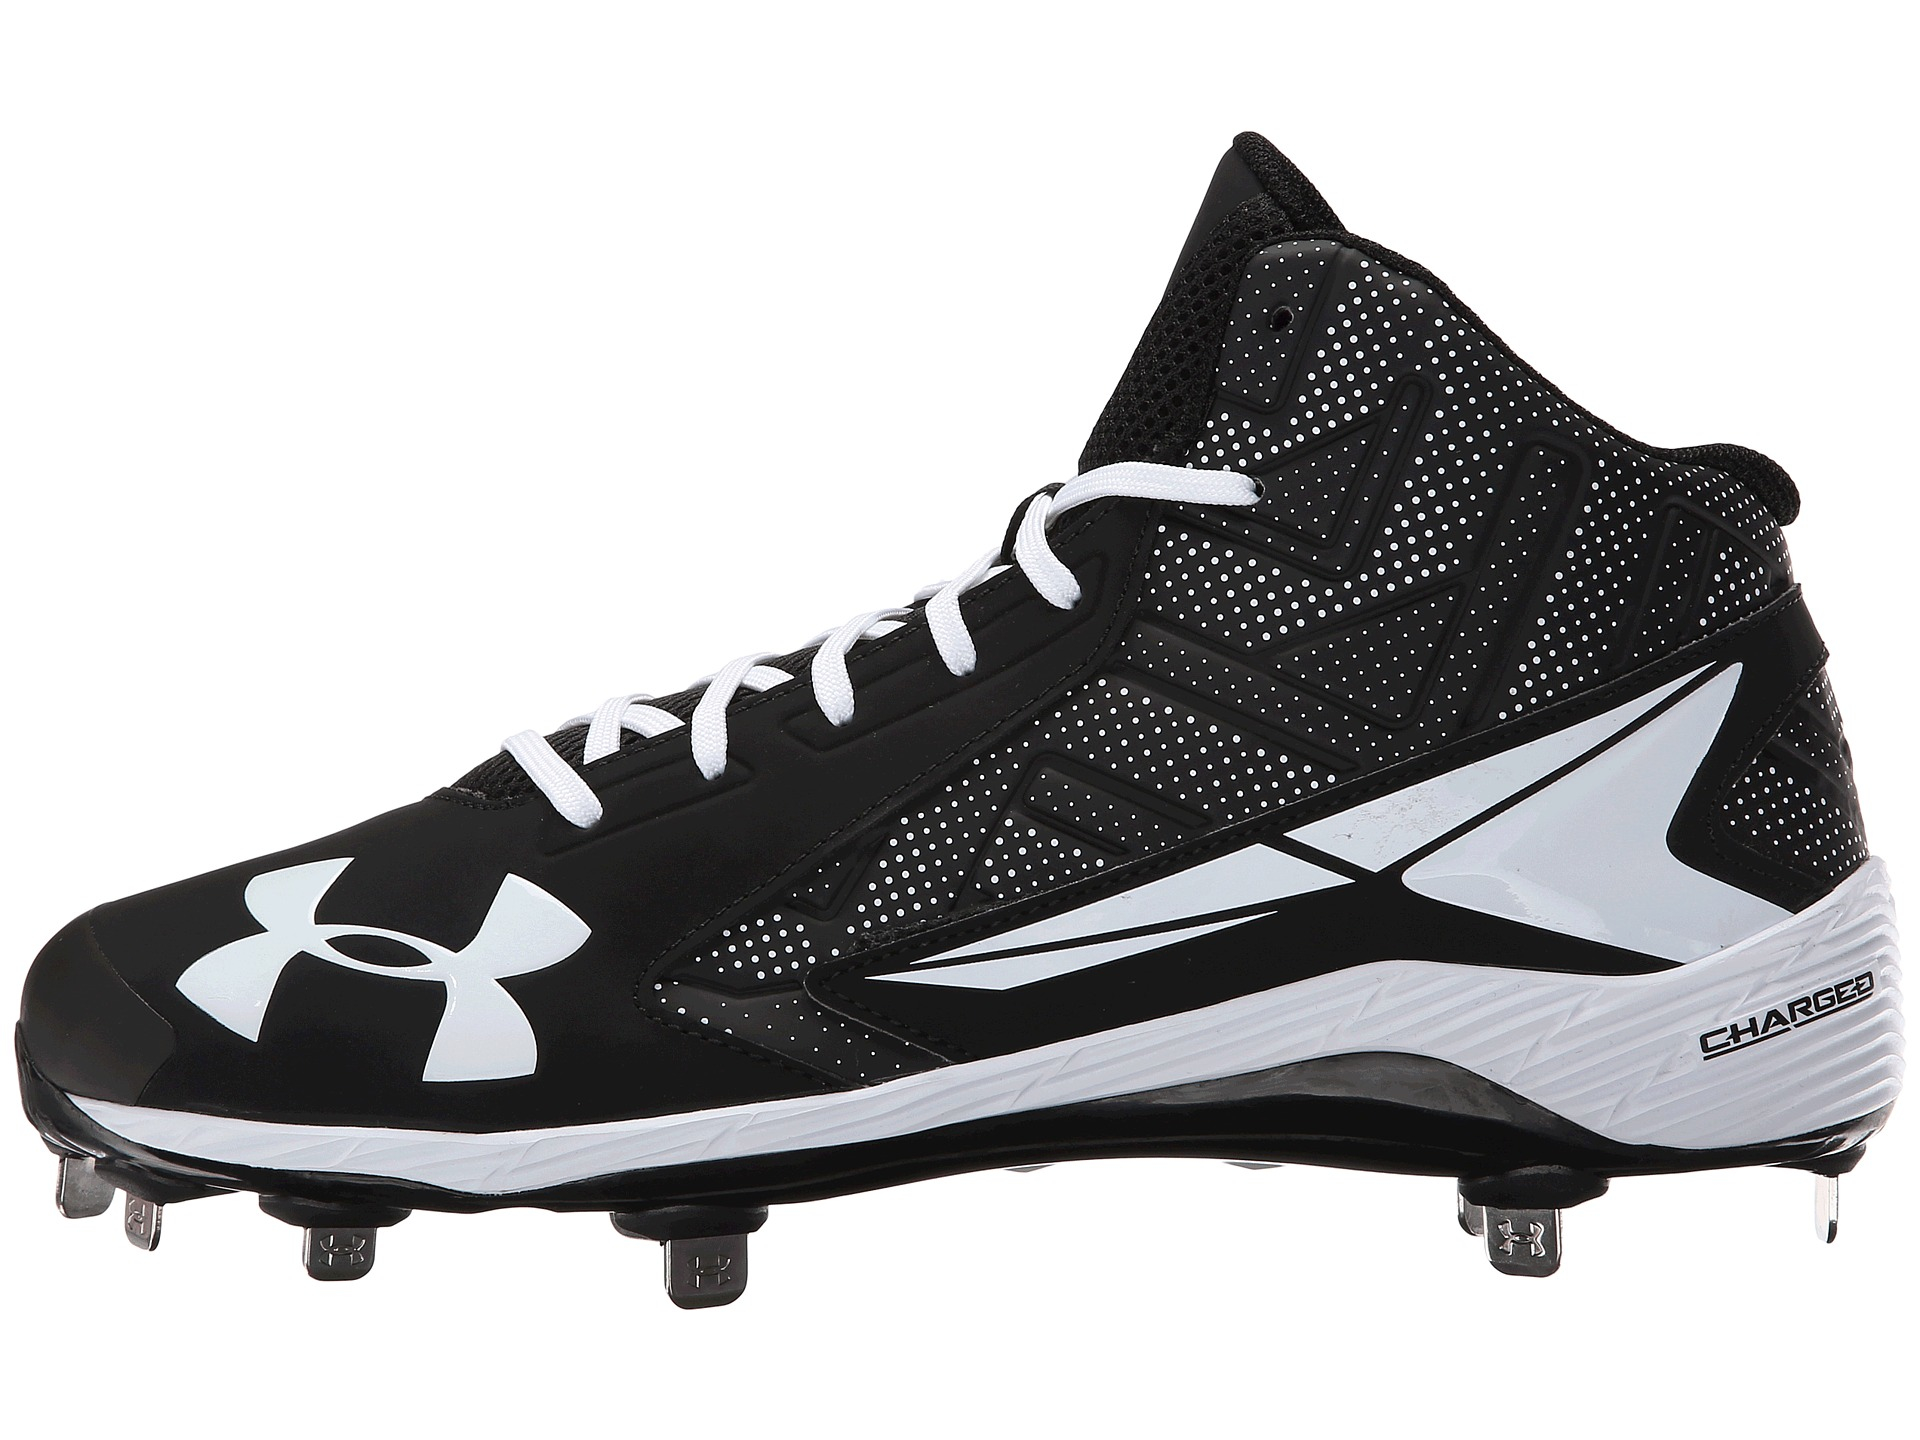 Lyst - Under Armour Ua Yard Mid St in Black for Men 89a808c4796